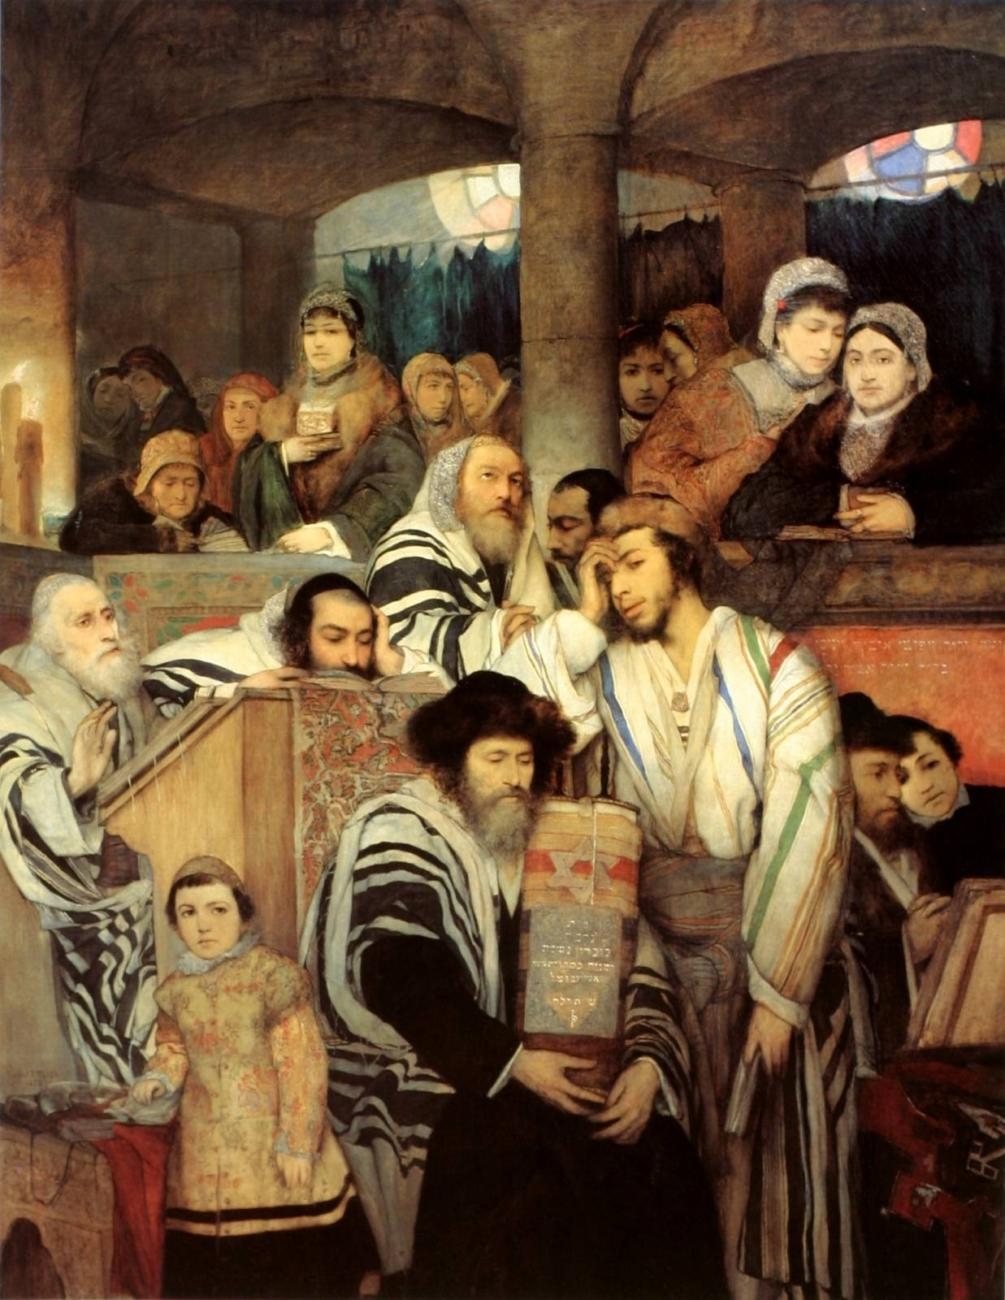 Jews Praying in the Synagogue on Yom Kippur by Maurycy Gottlieb (1878)